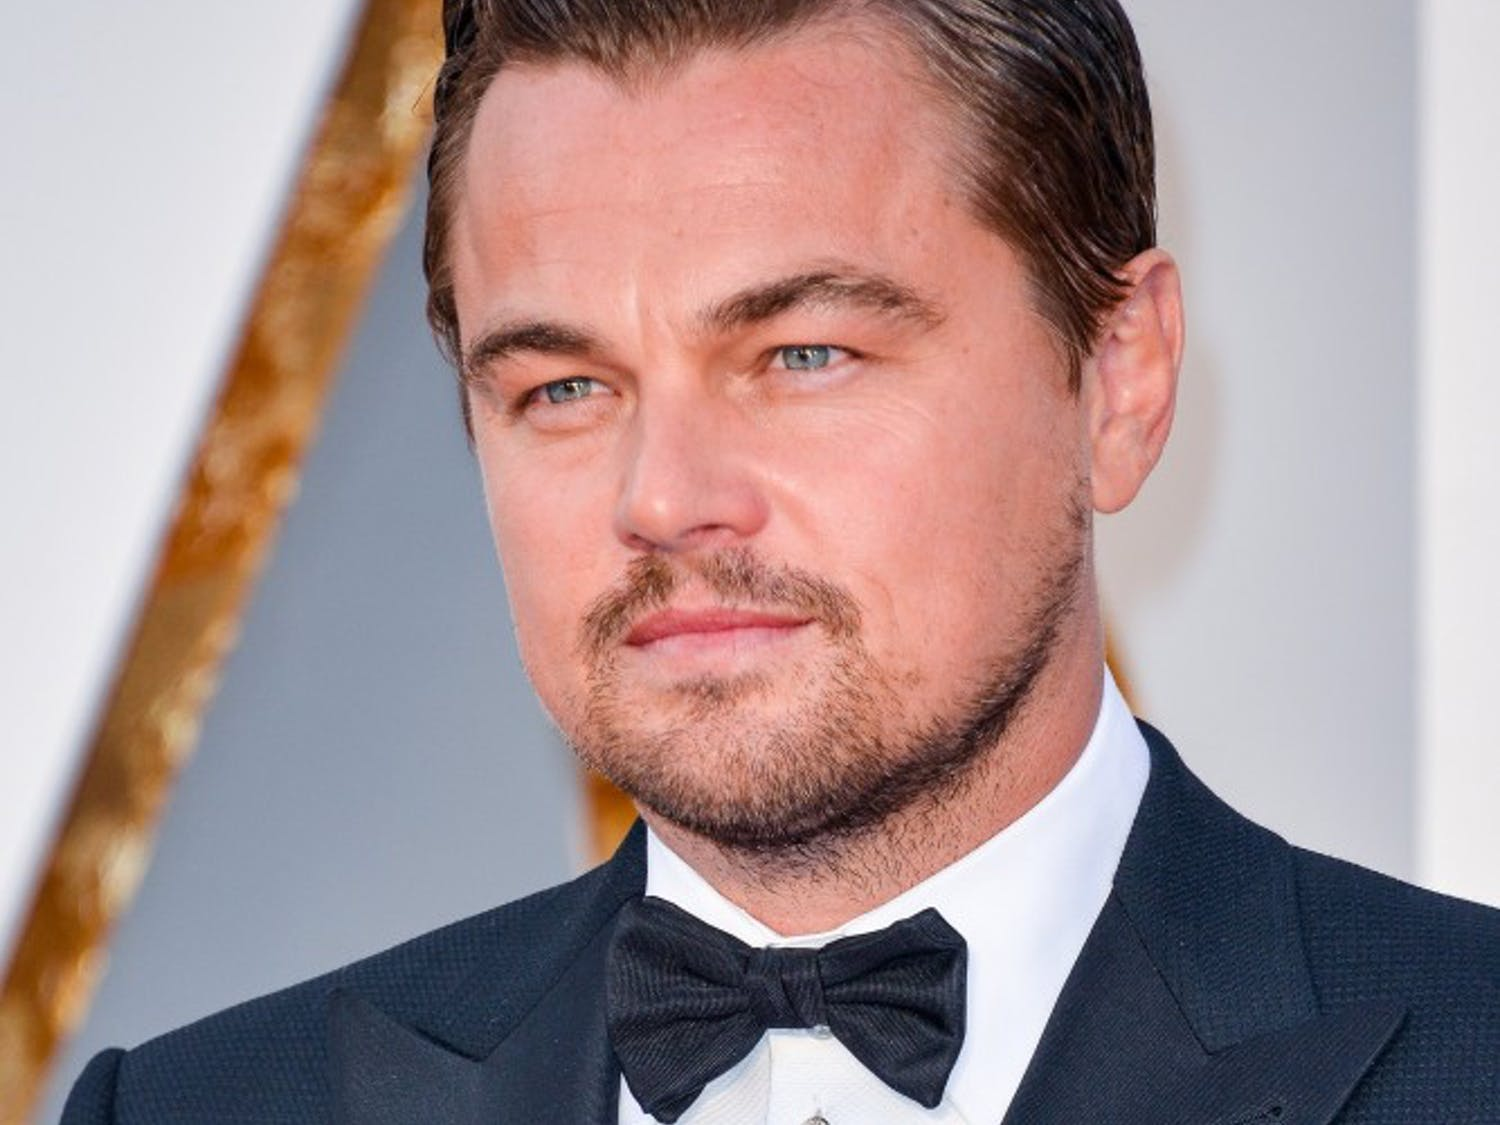 Leonardo DiCaprio arrives at the 88th Academy Awards on Sunday, Feb. 28, 2016, at the Dolby Theatre in Hollywood. (Sthanlee B. Mirador/Sipa USA/TNS)